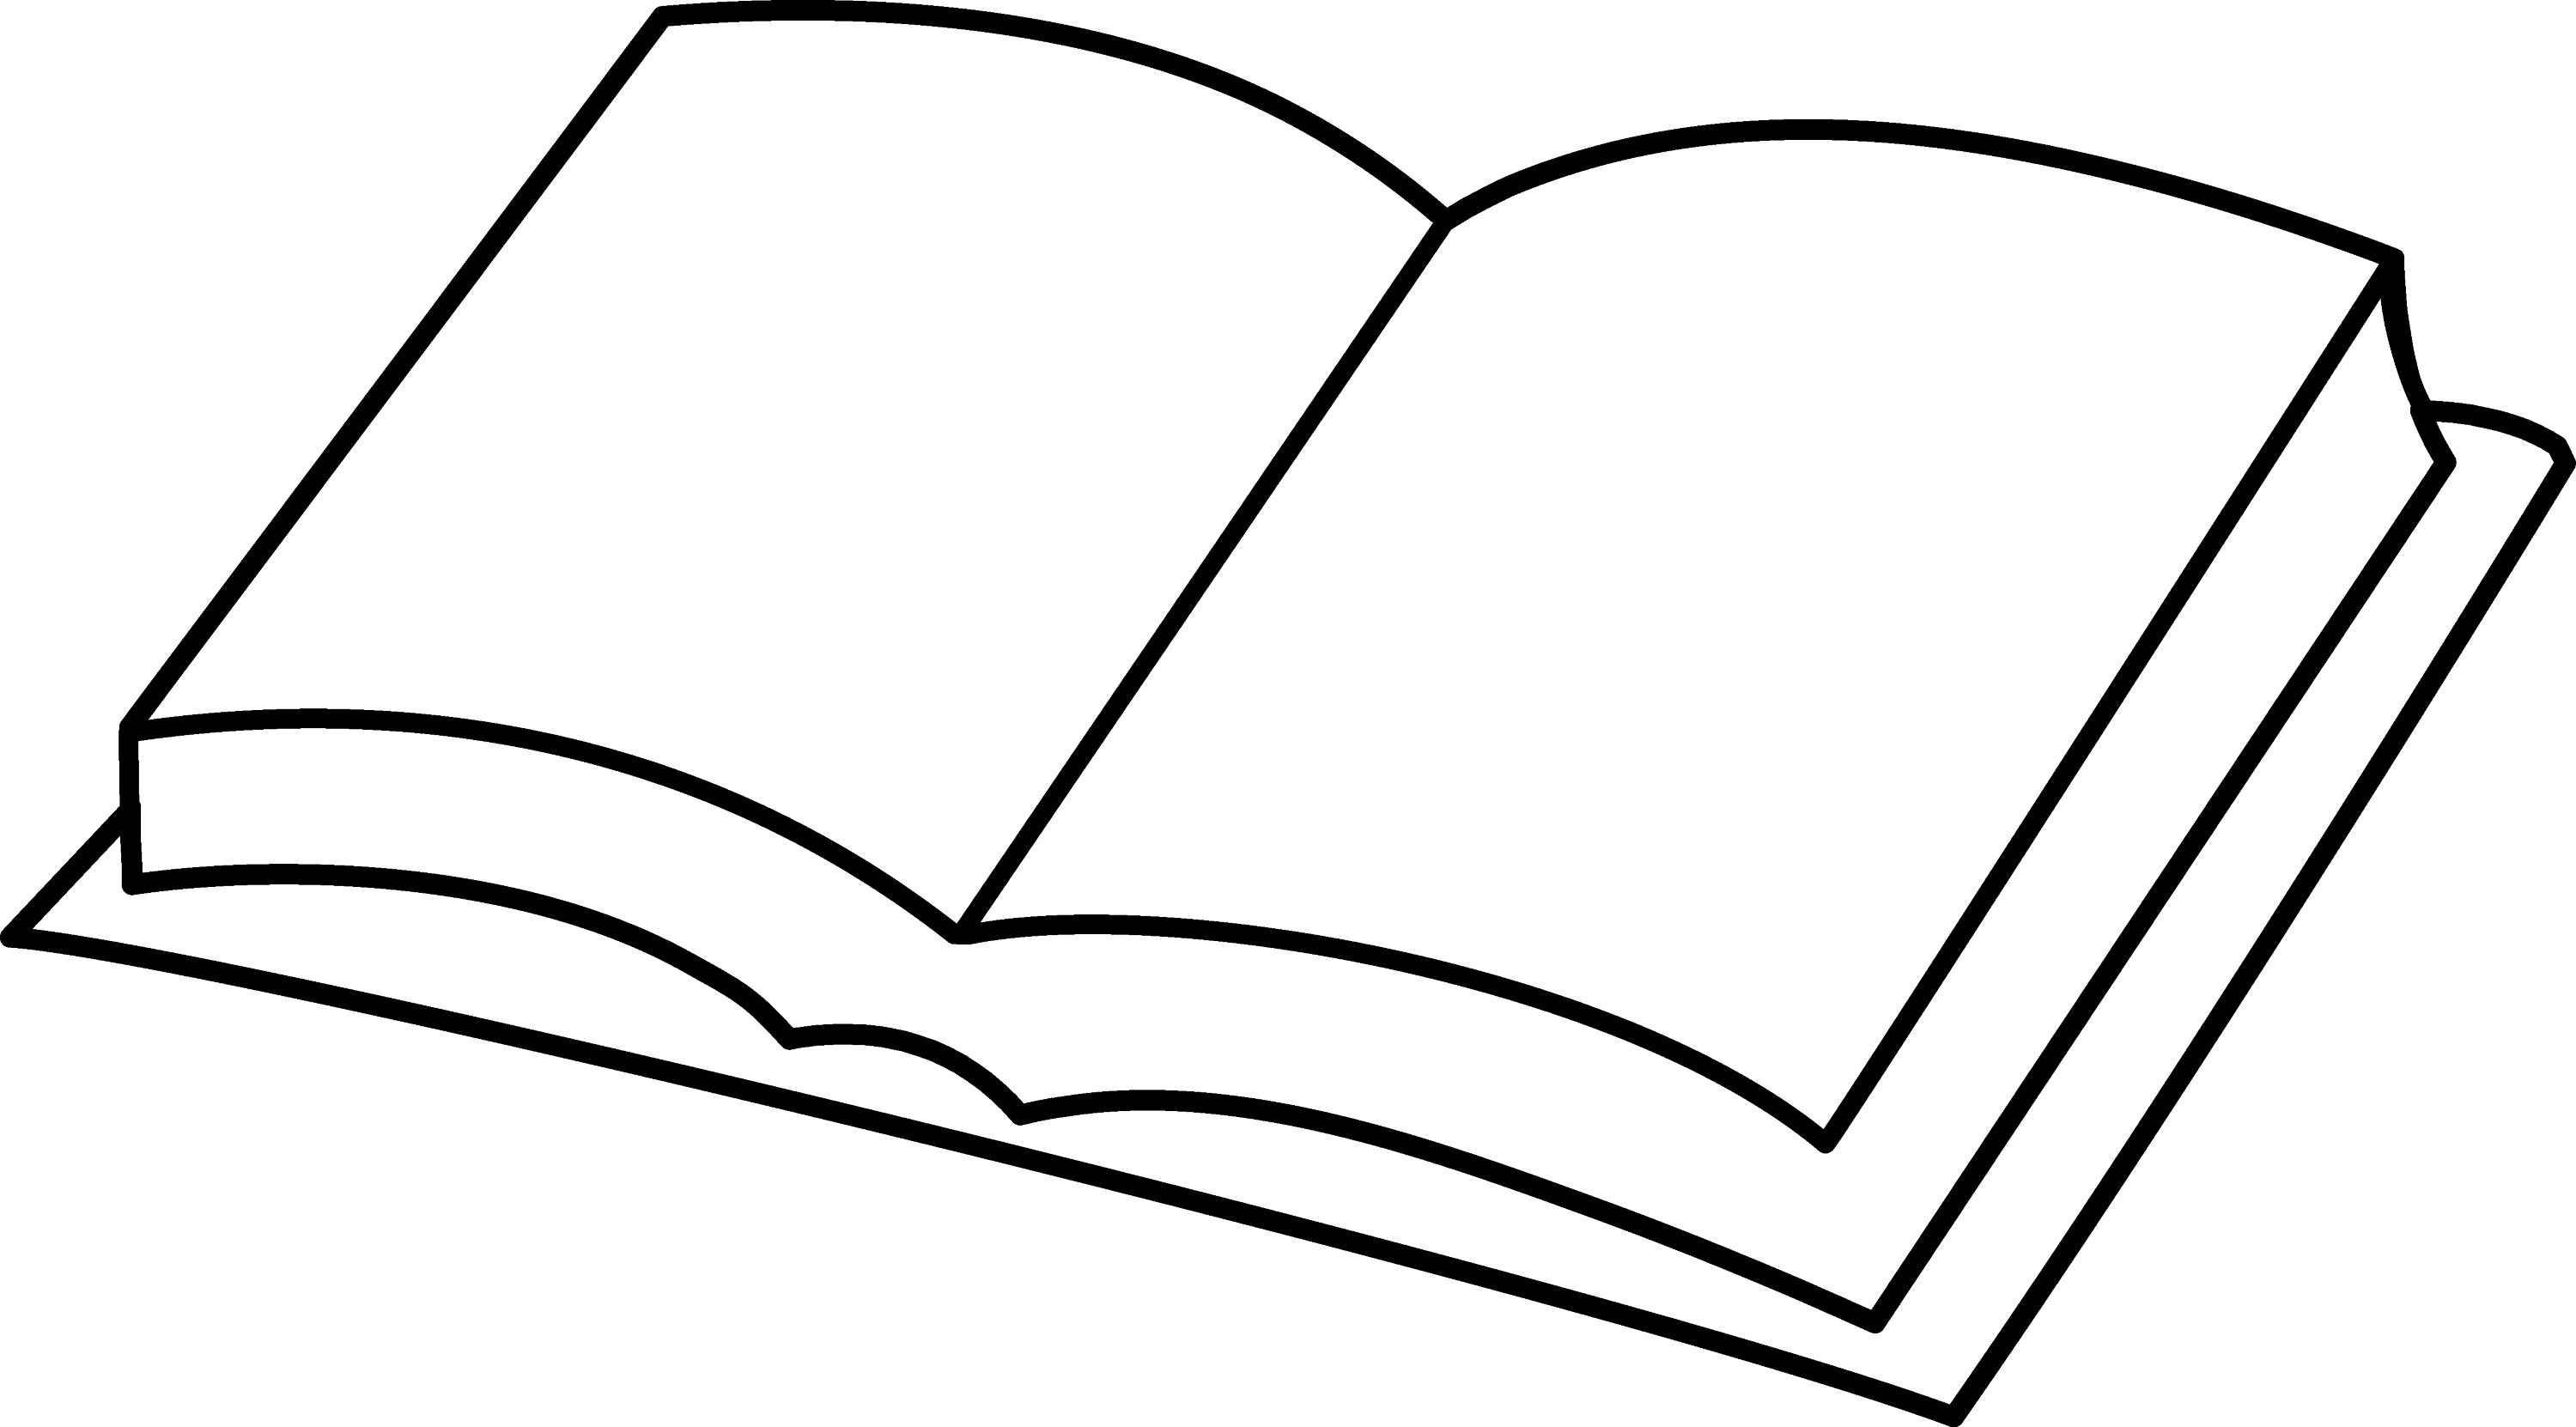 clipart open book blank pages - photo #37